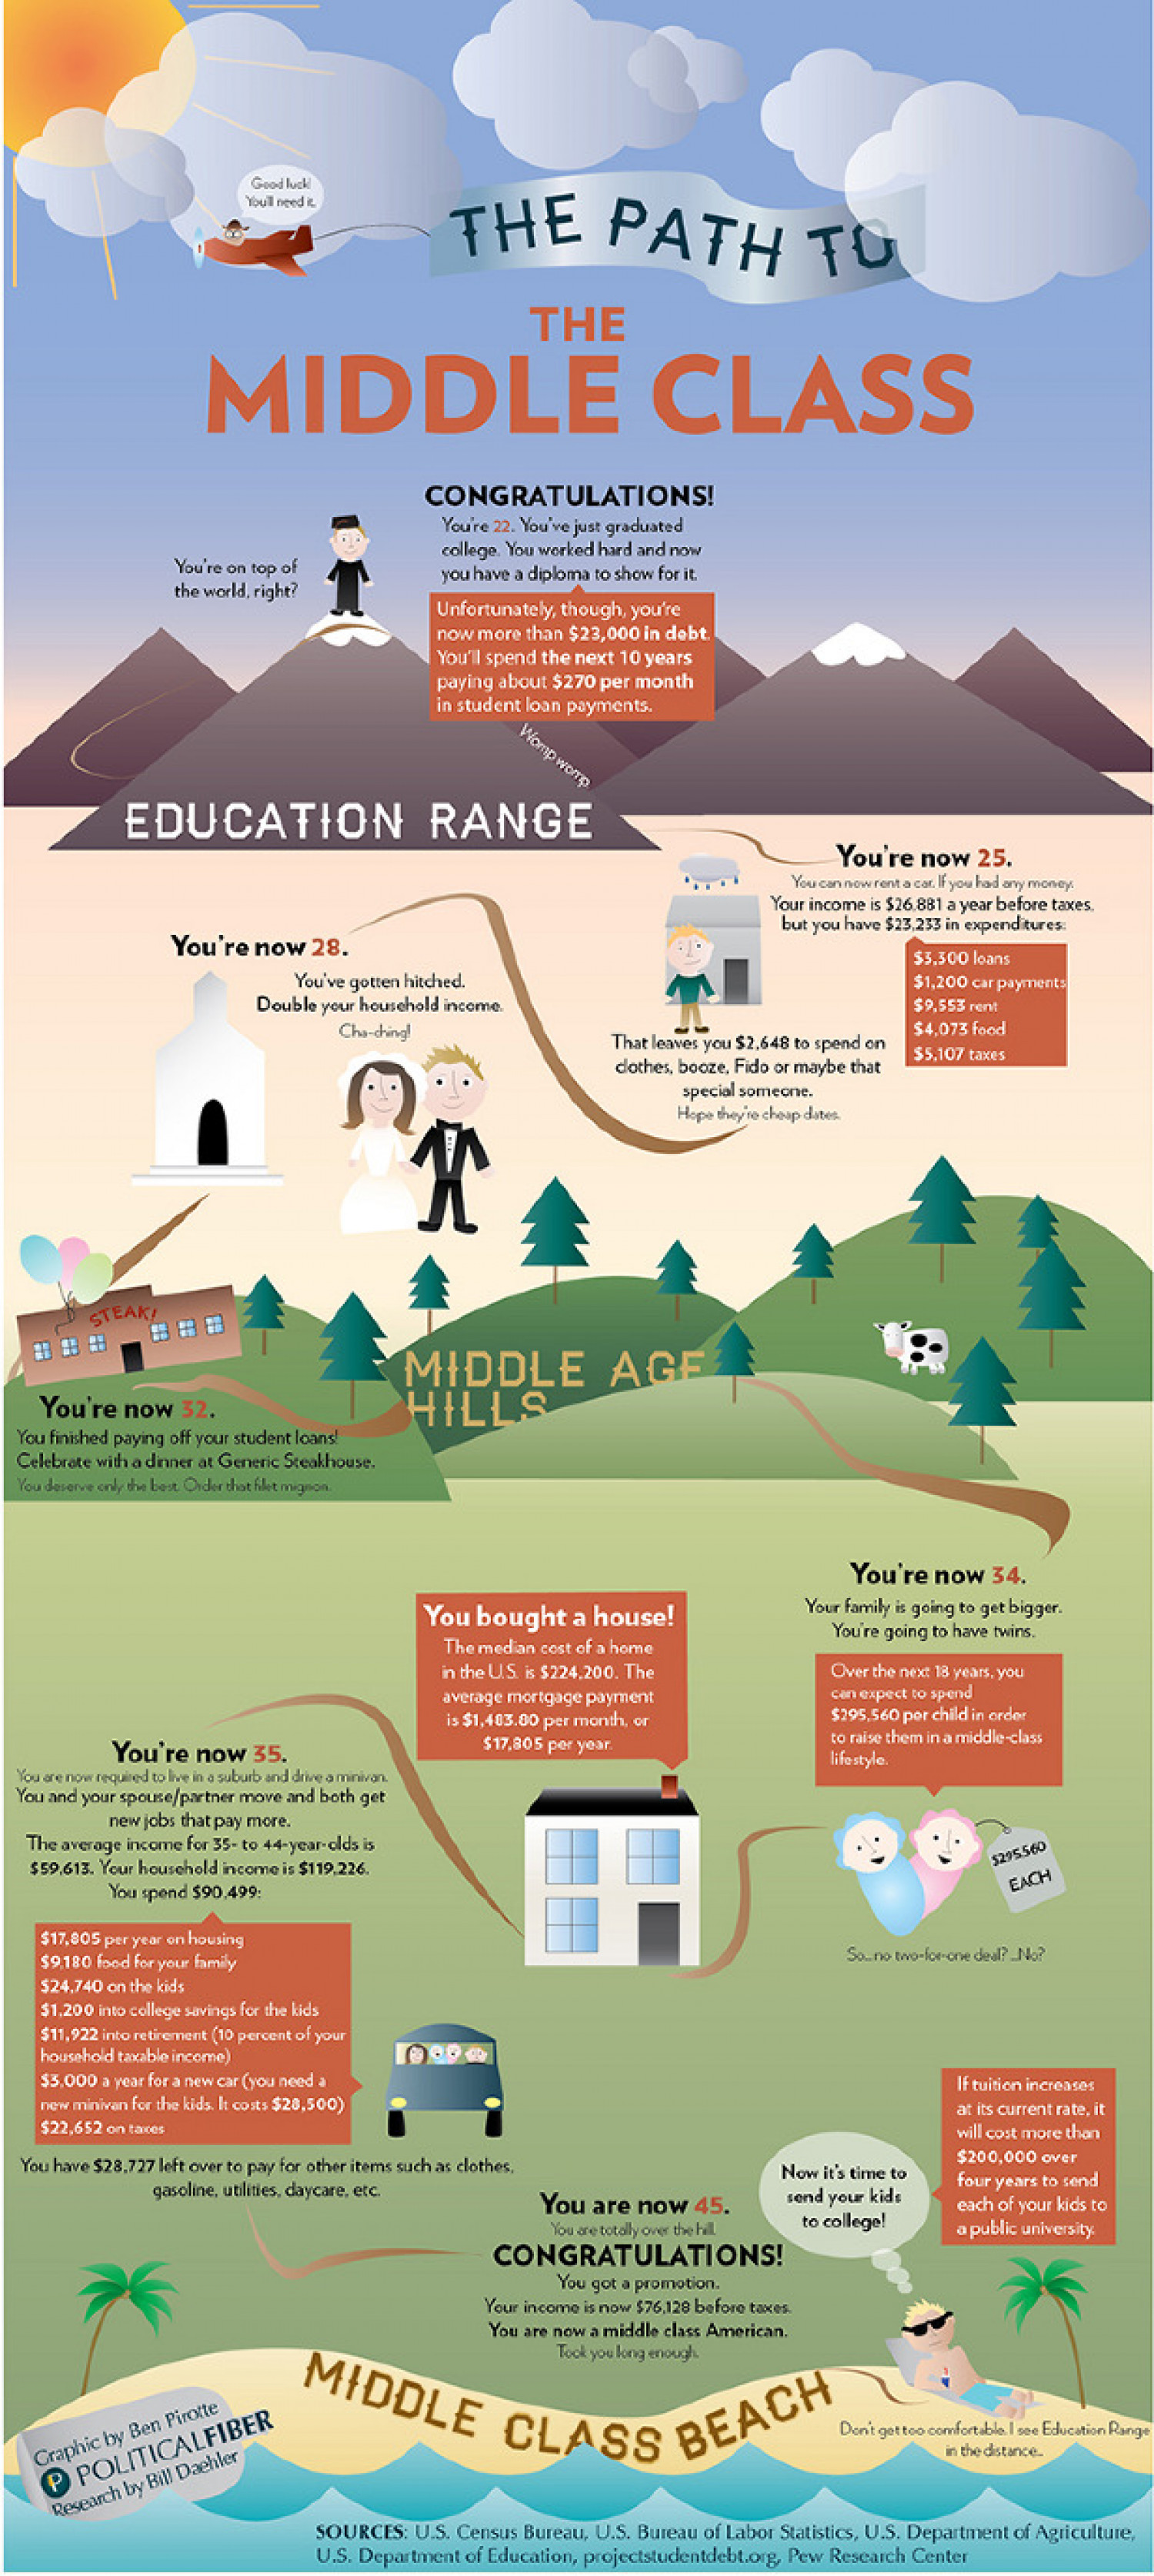 The Path To The Middle Class Infographic